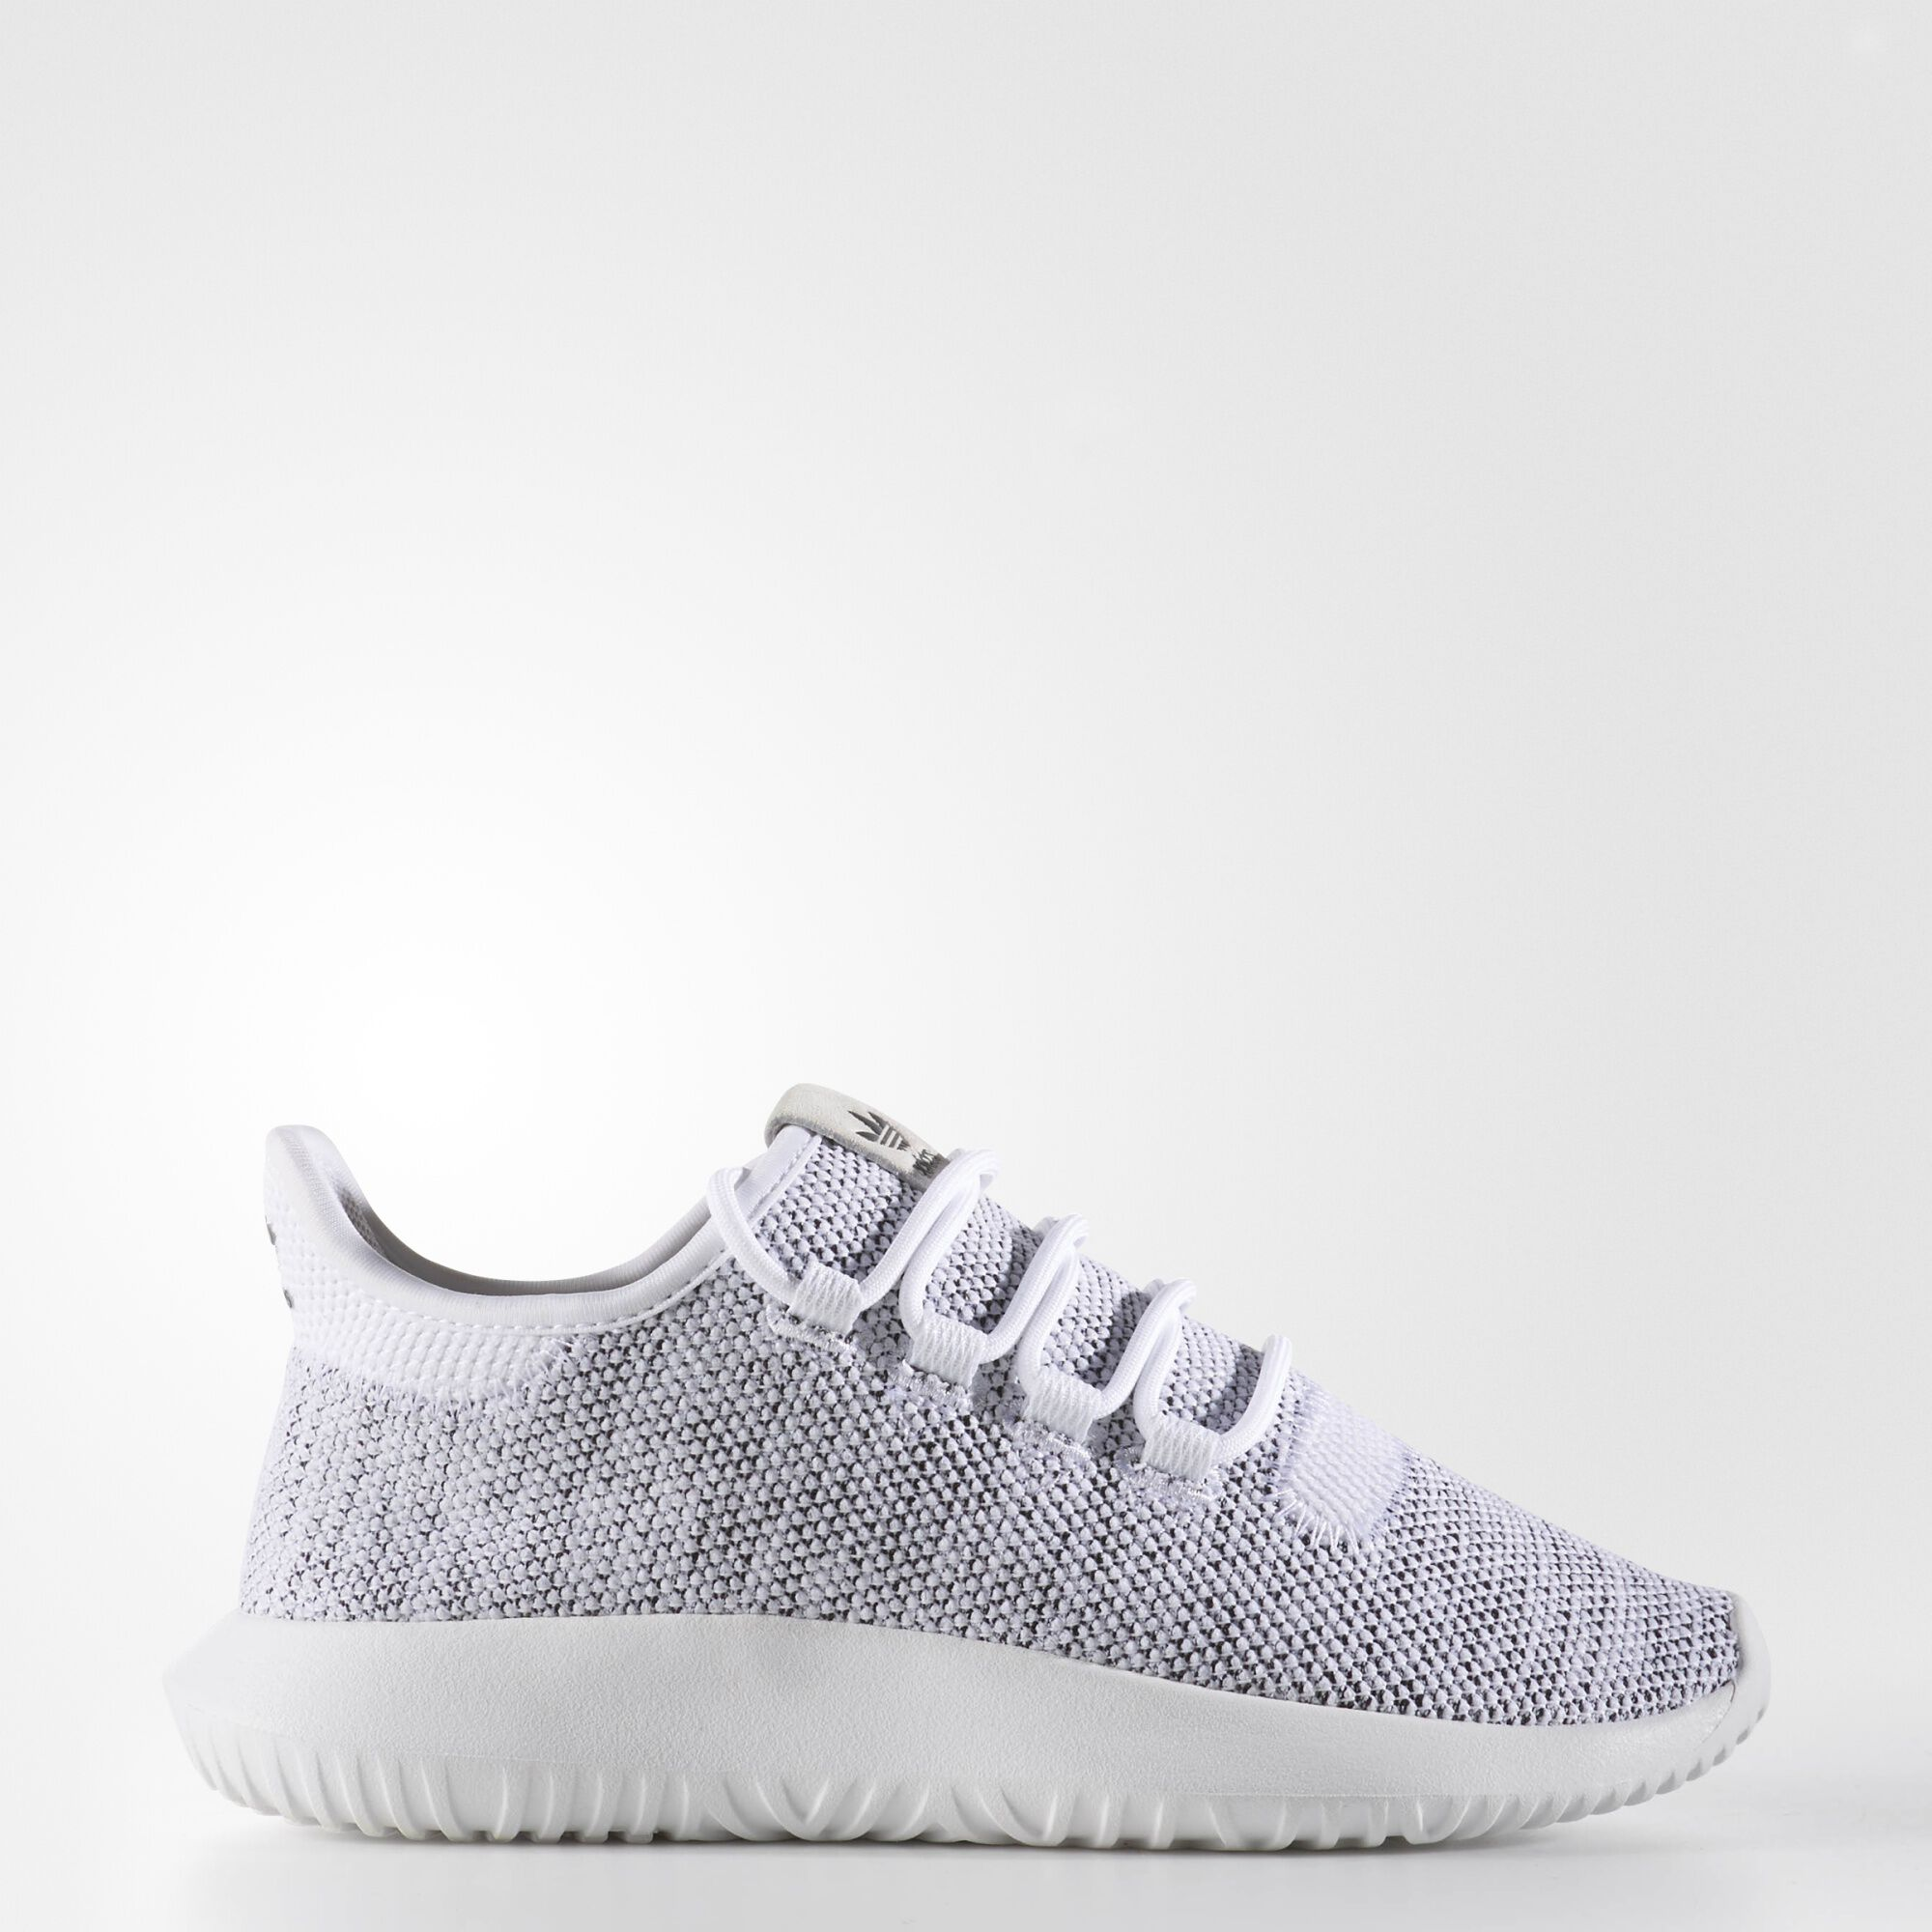 Adidas Tubular Shadow Camo